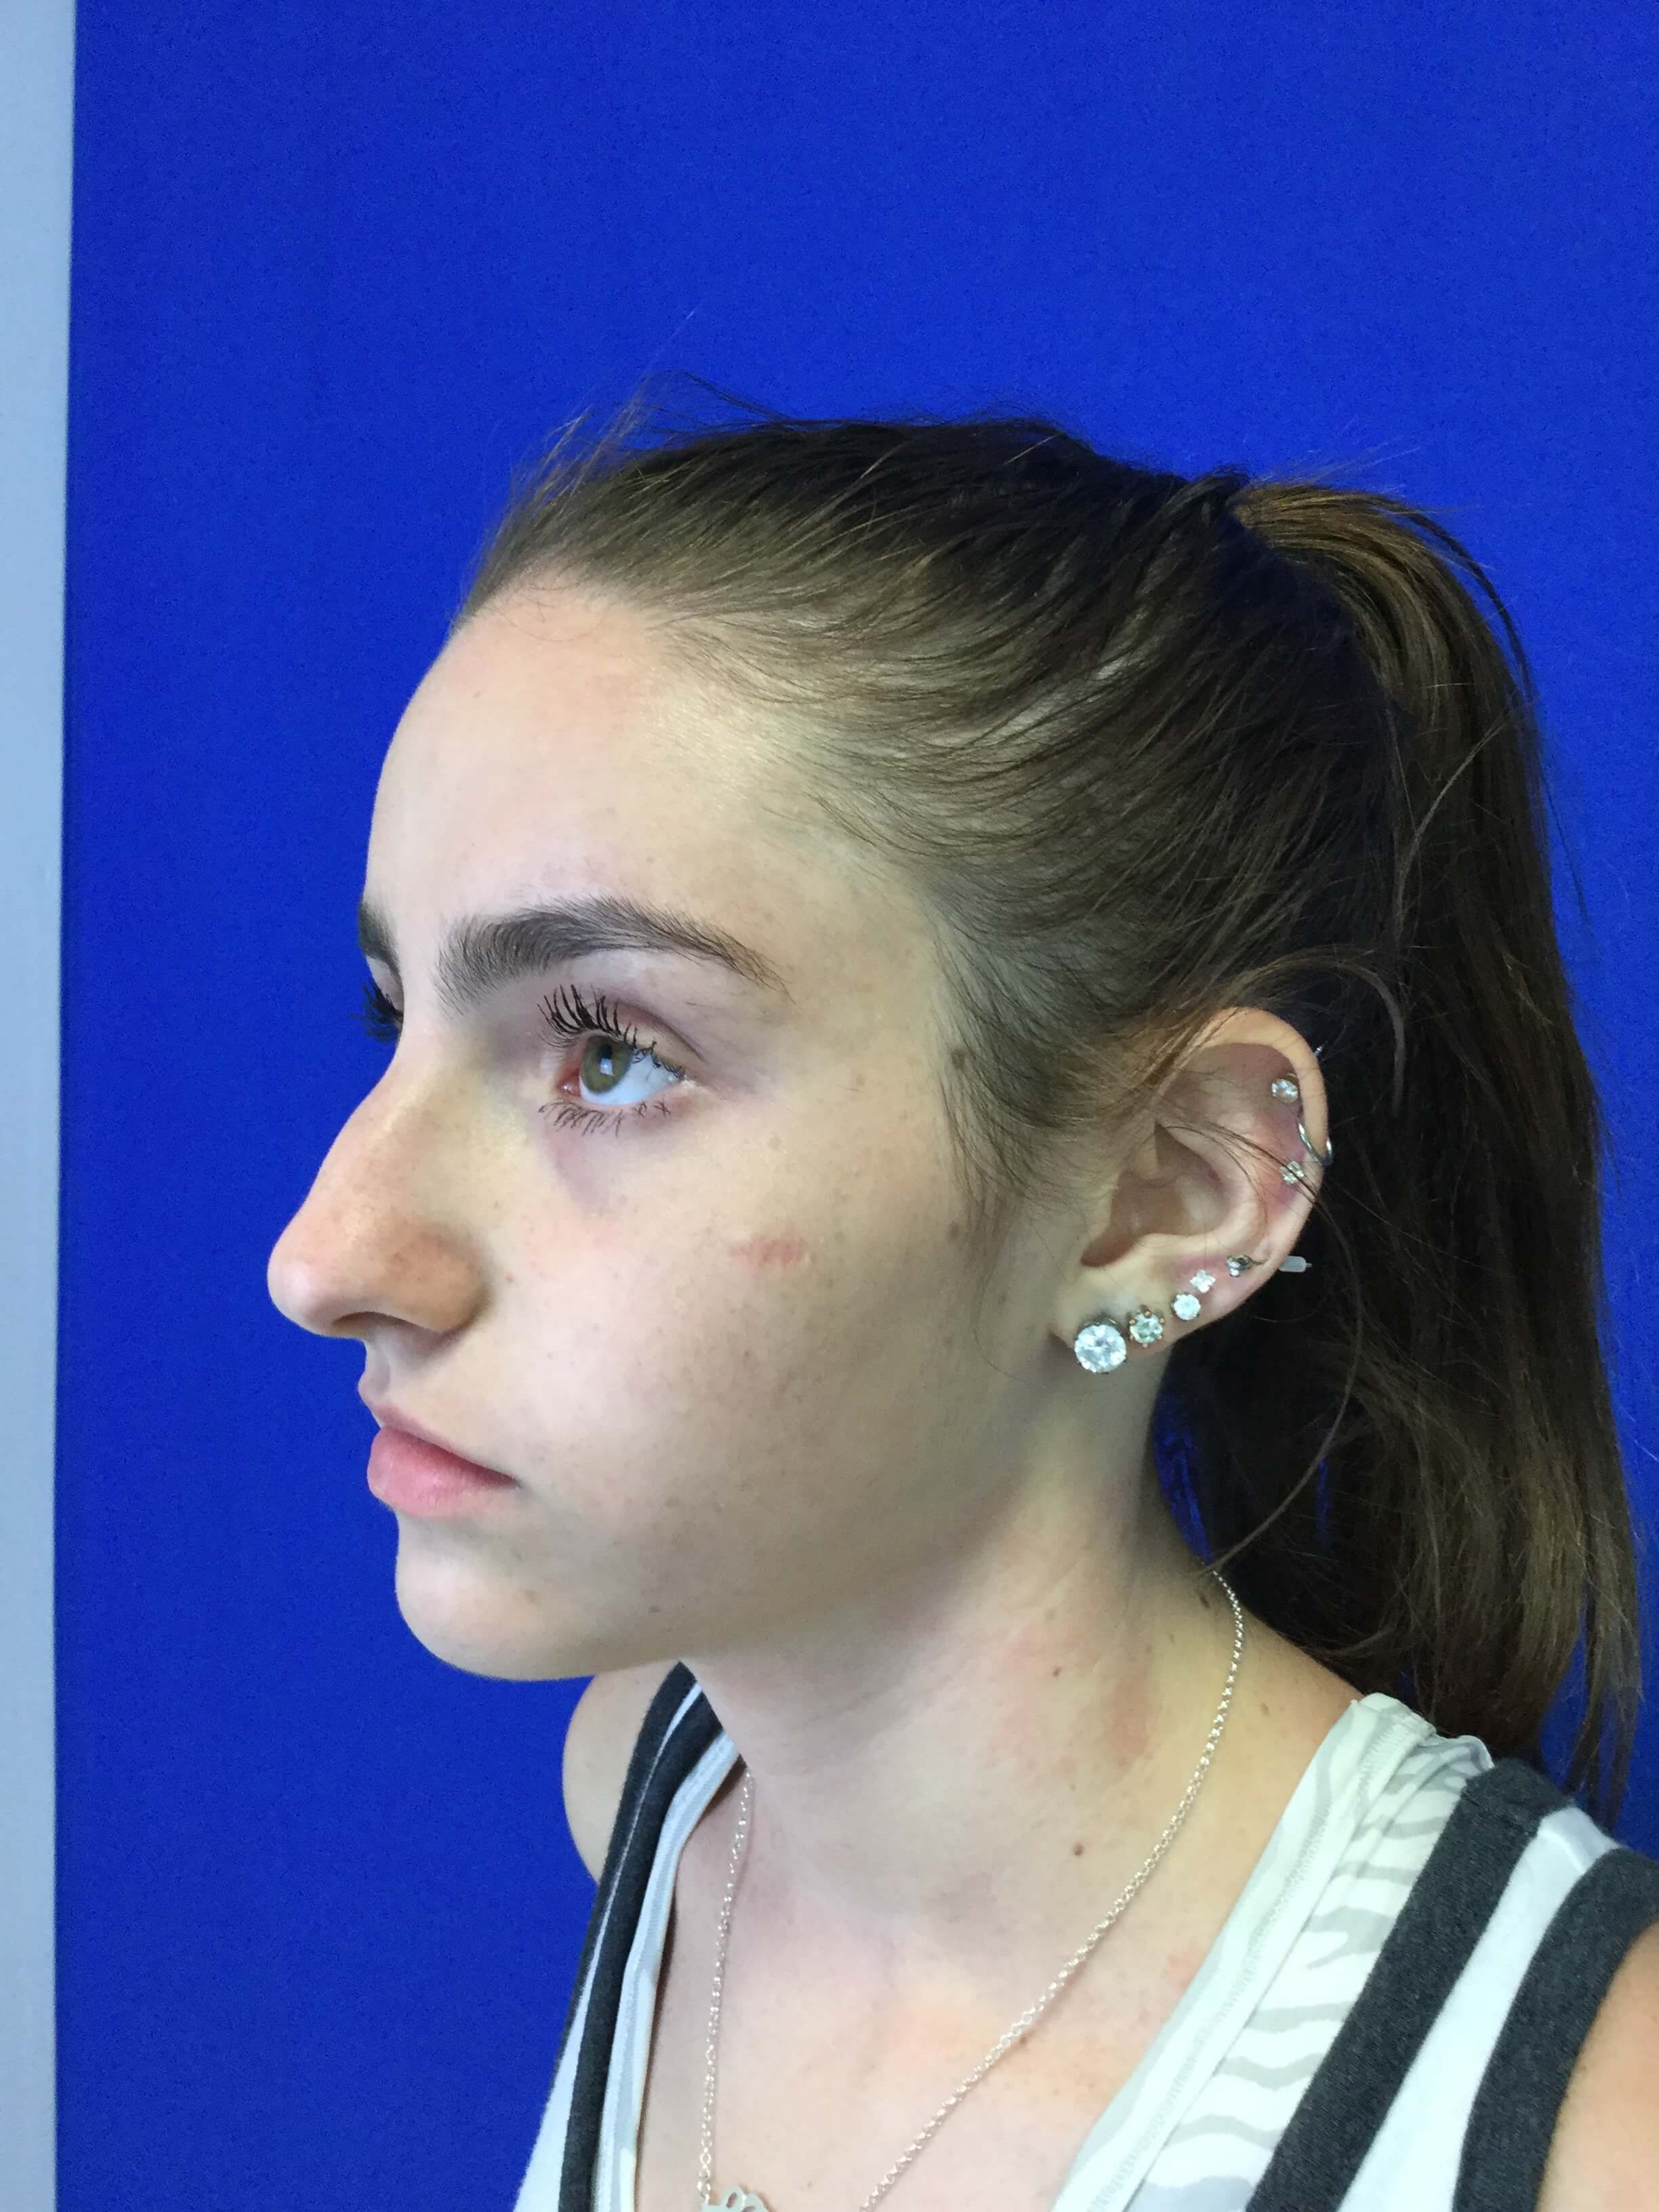 Dr. Suzman rhinoplasty surgery Before